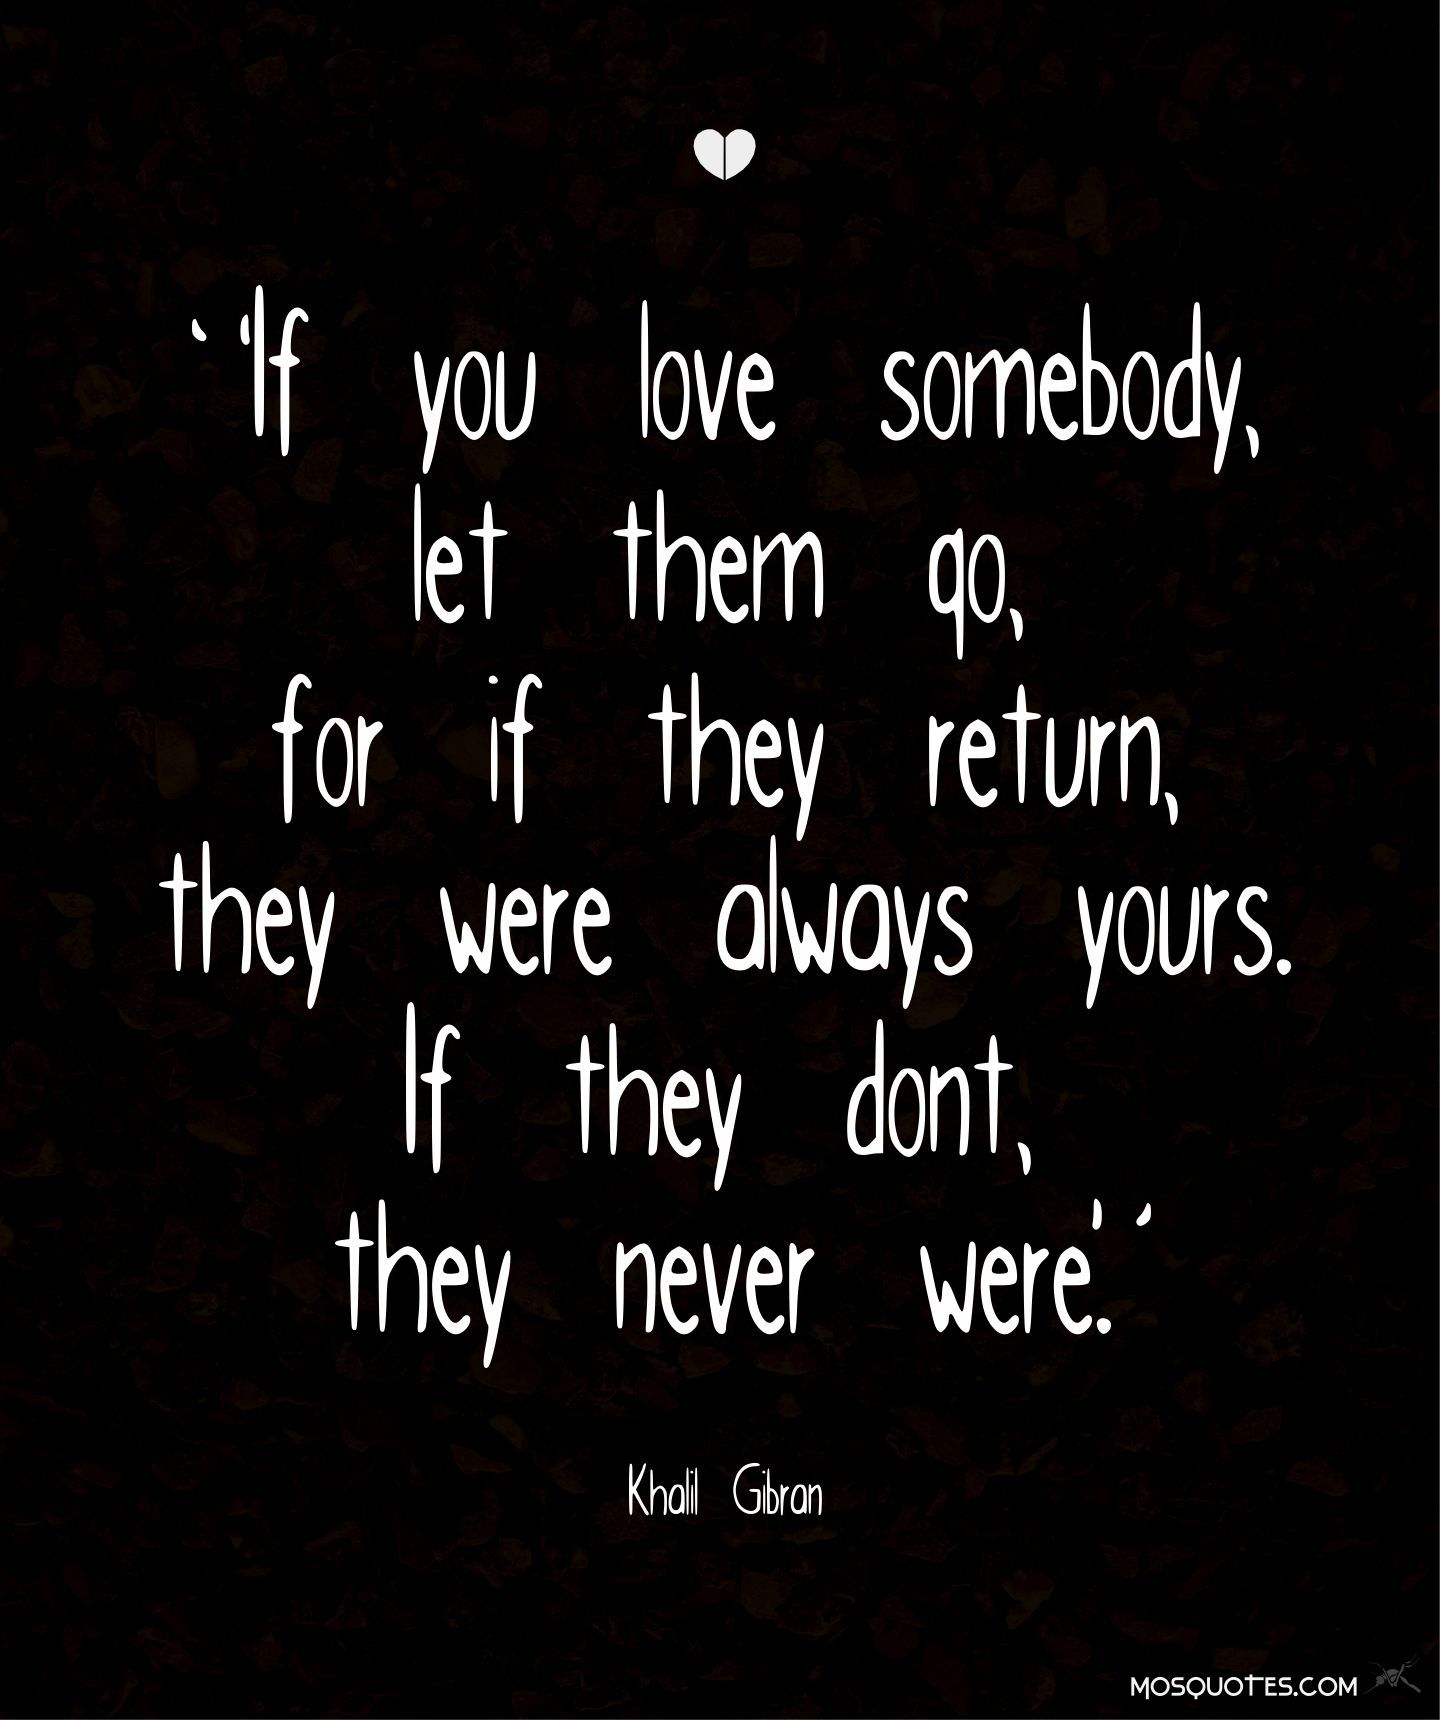 Romance Quotes If You Love Somebody Let Them Go For If They Return